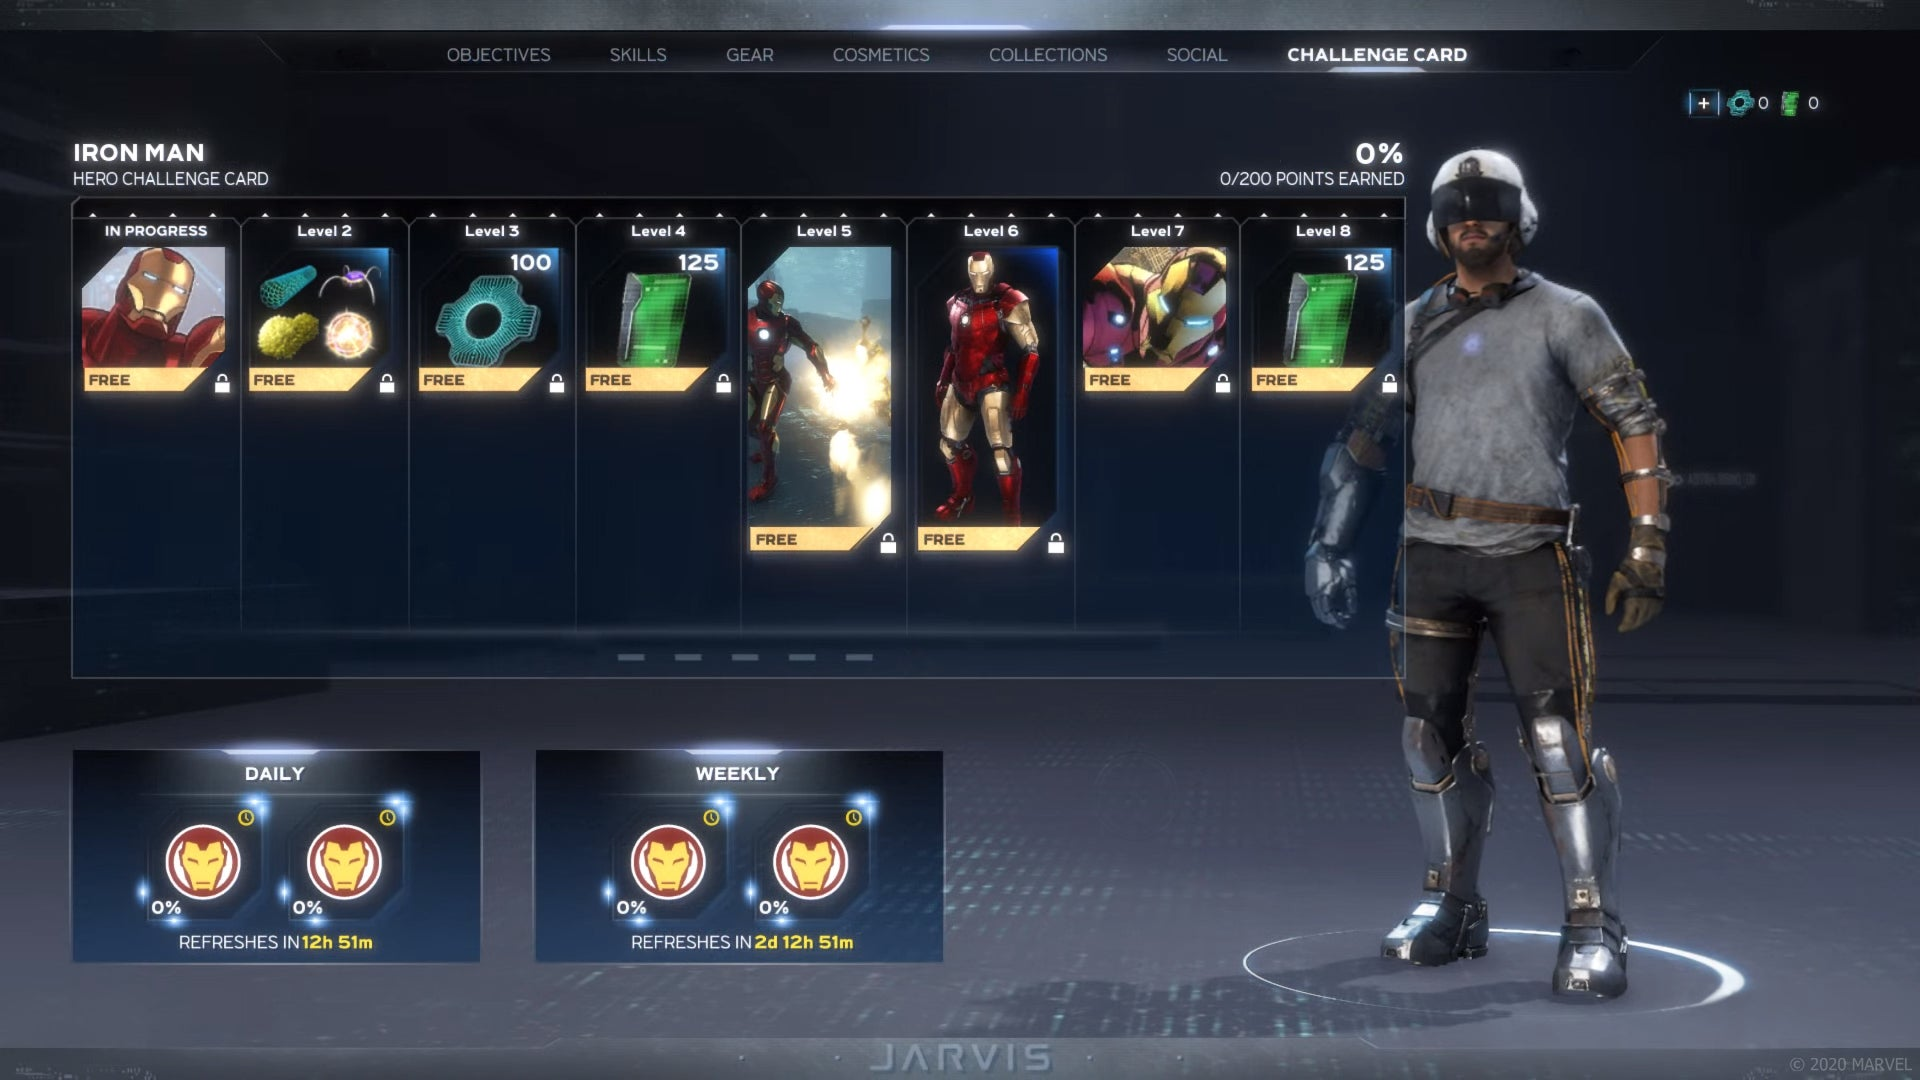 Square Enix details how the cosmetic system works in Marvel's Avengers, right before it launches